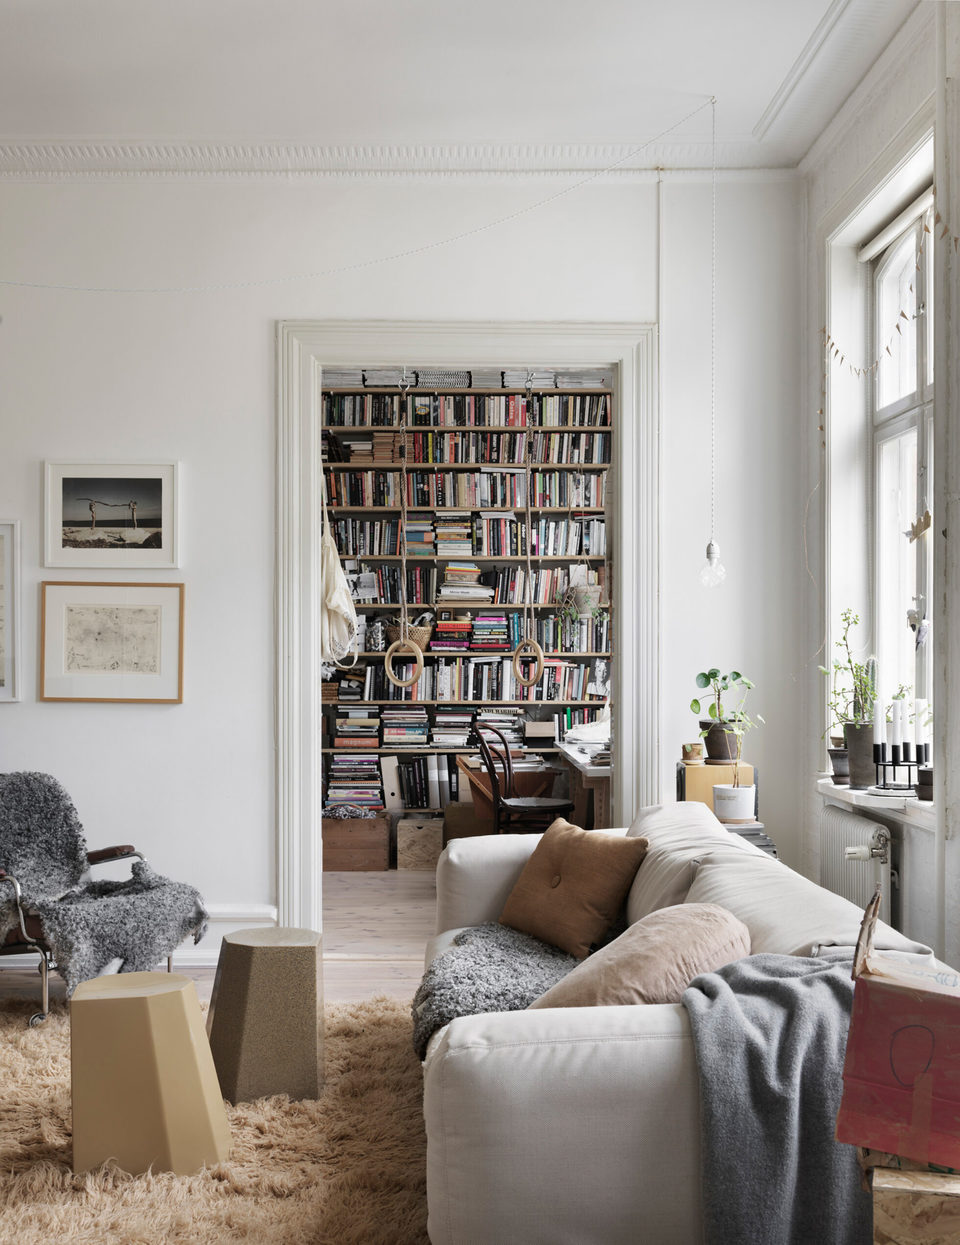 Soft+Neutral+Tones+in+Nina+Persson's+Malmö+Home